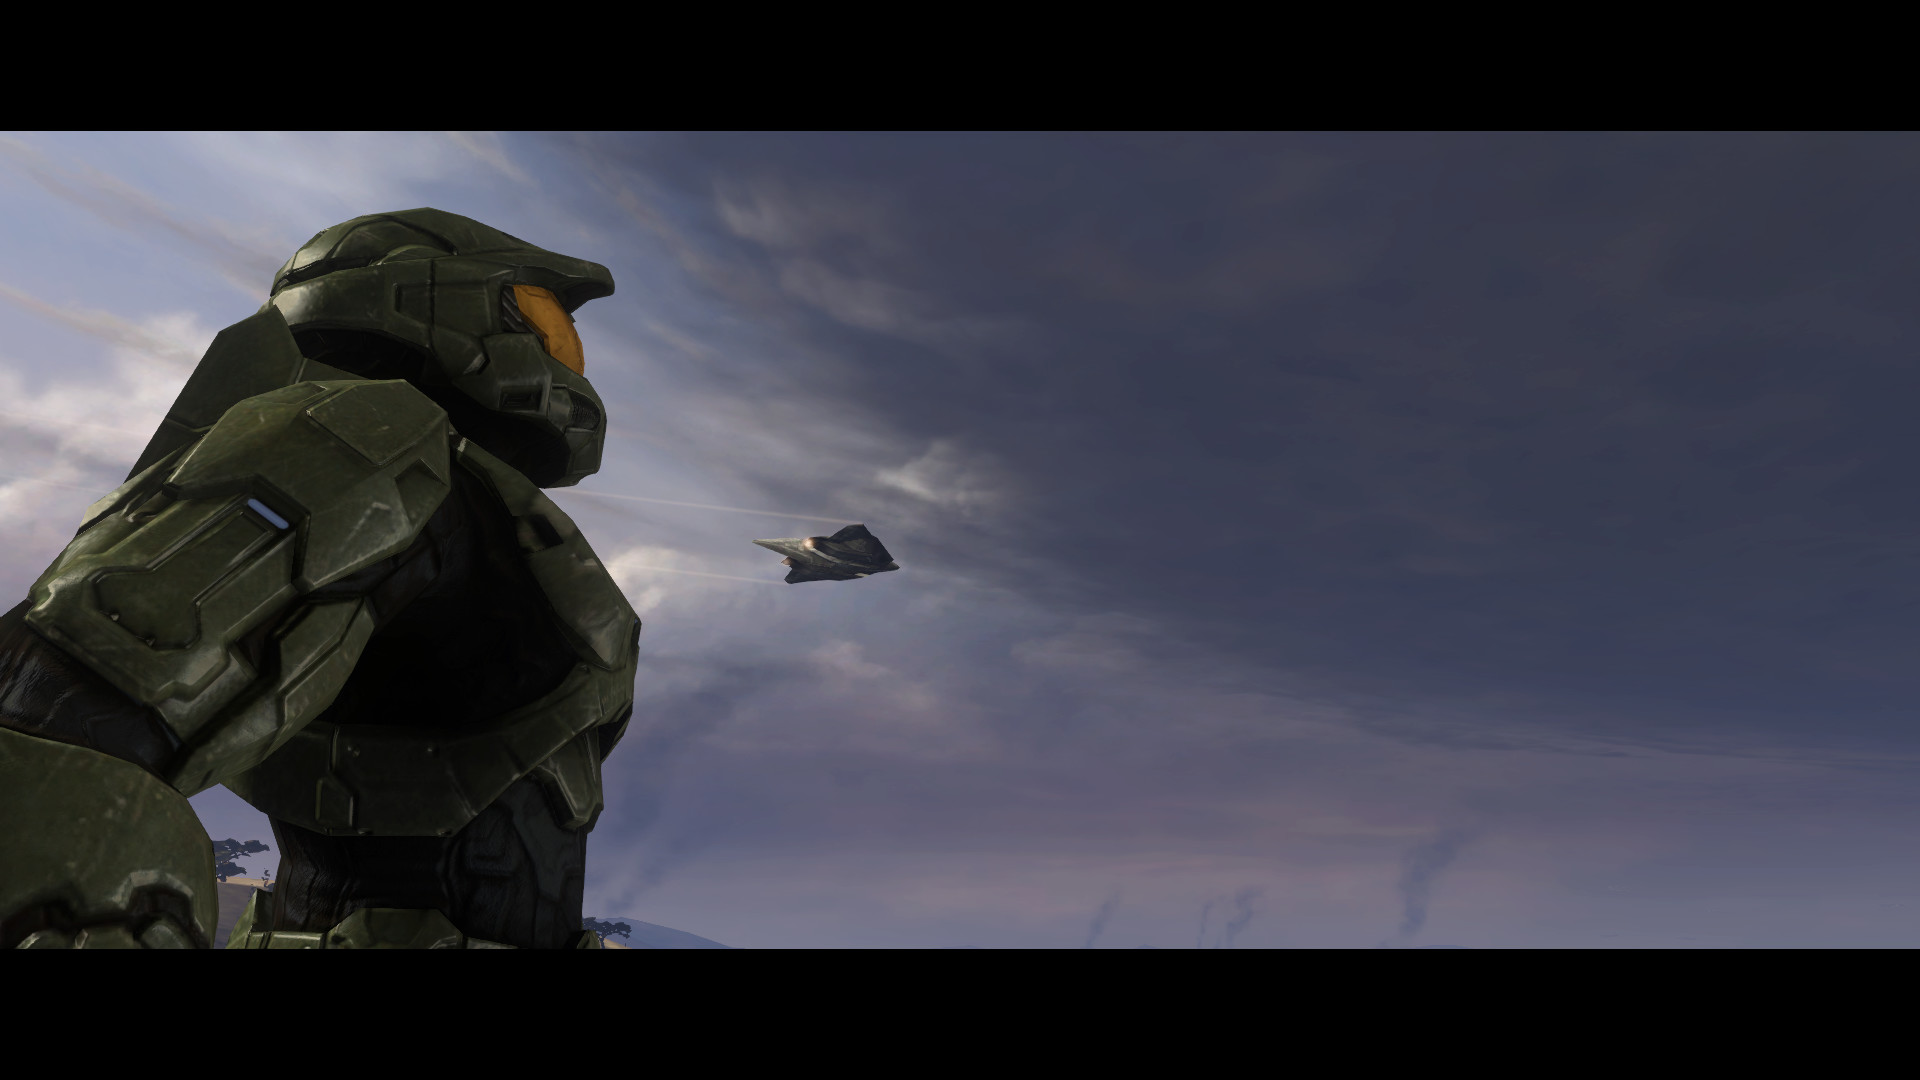 1920x1080 Epic moment in video game history (also my wallpaper) ...